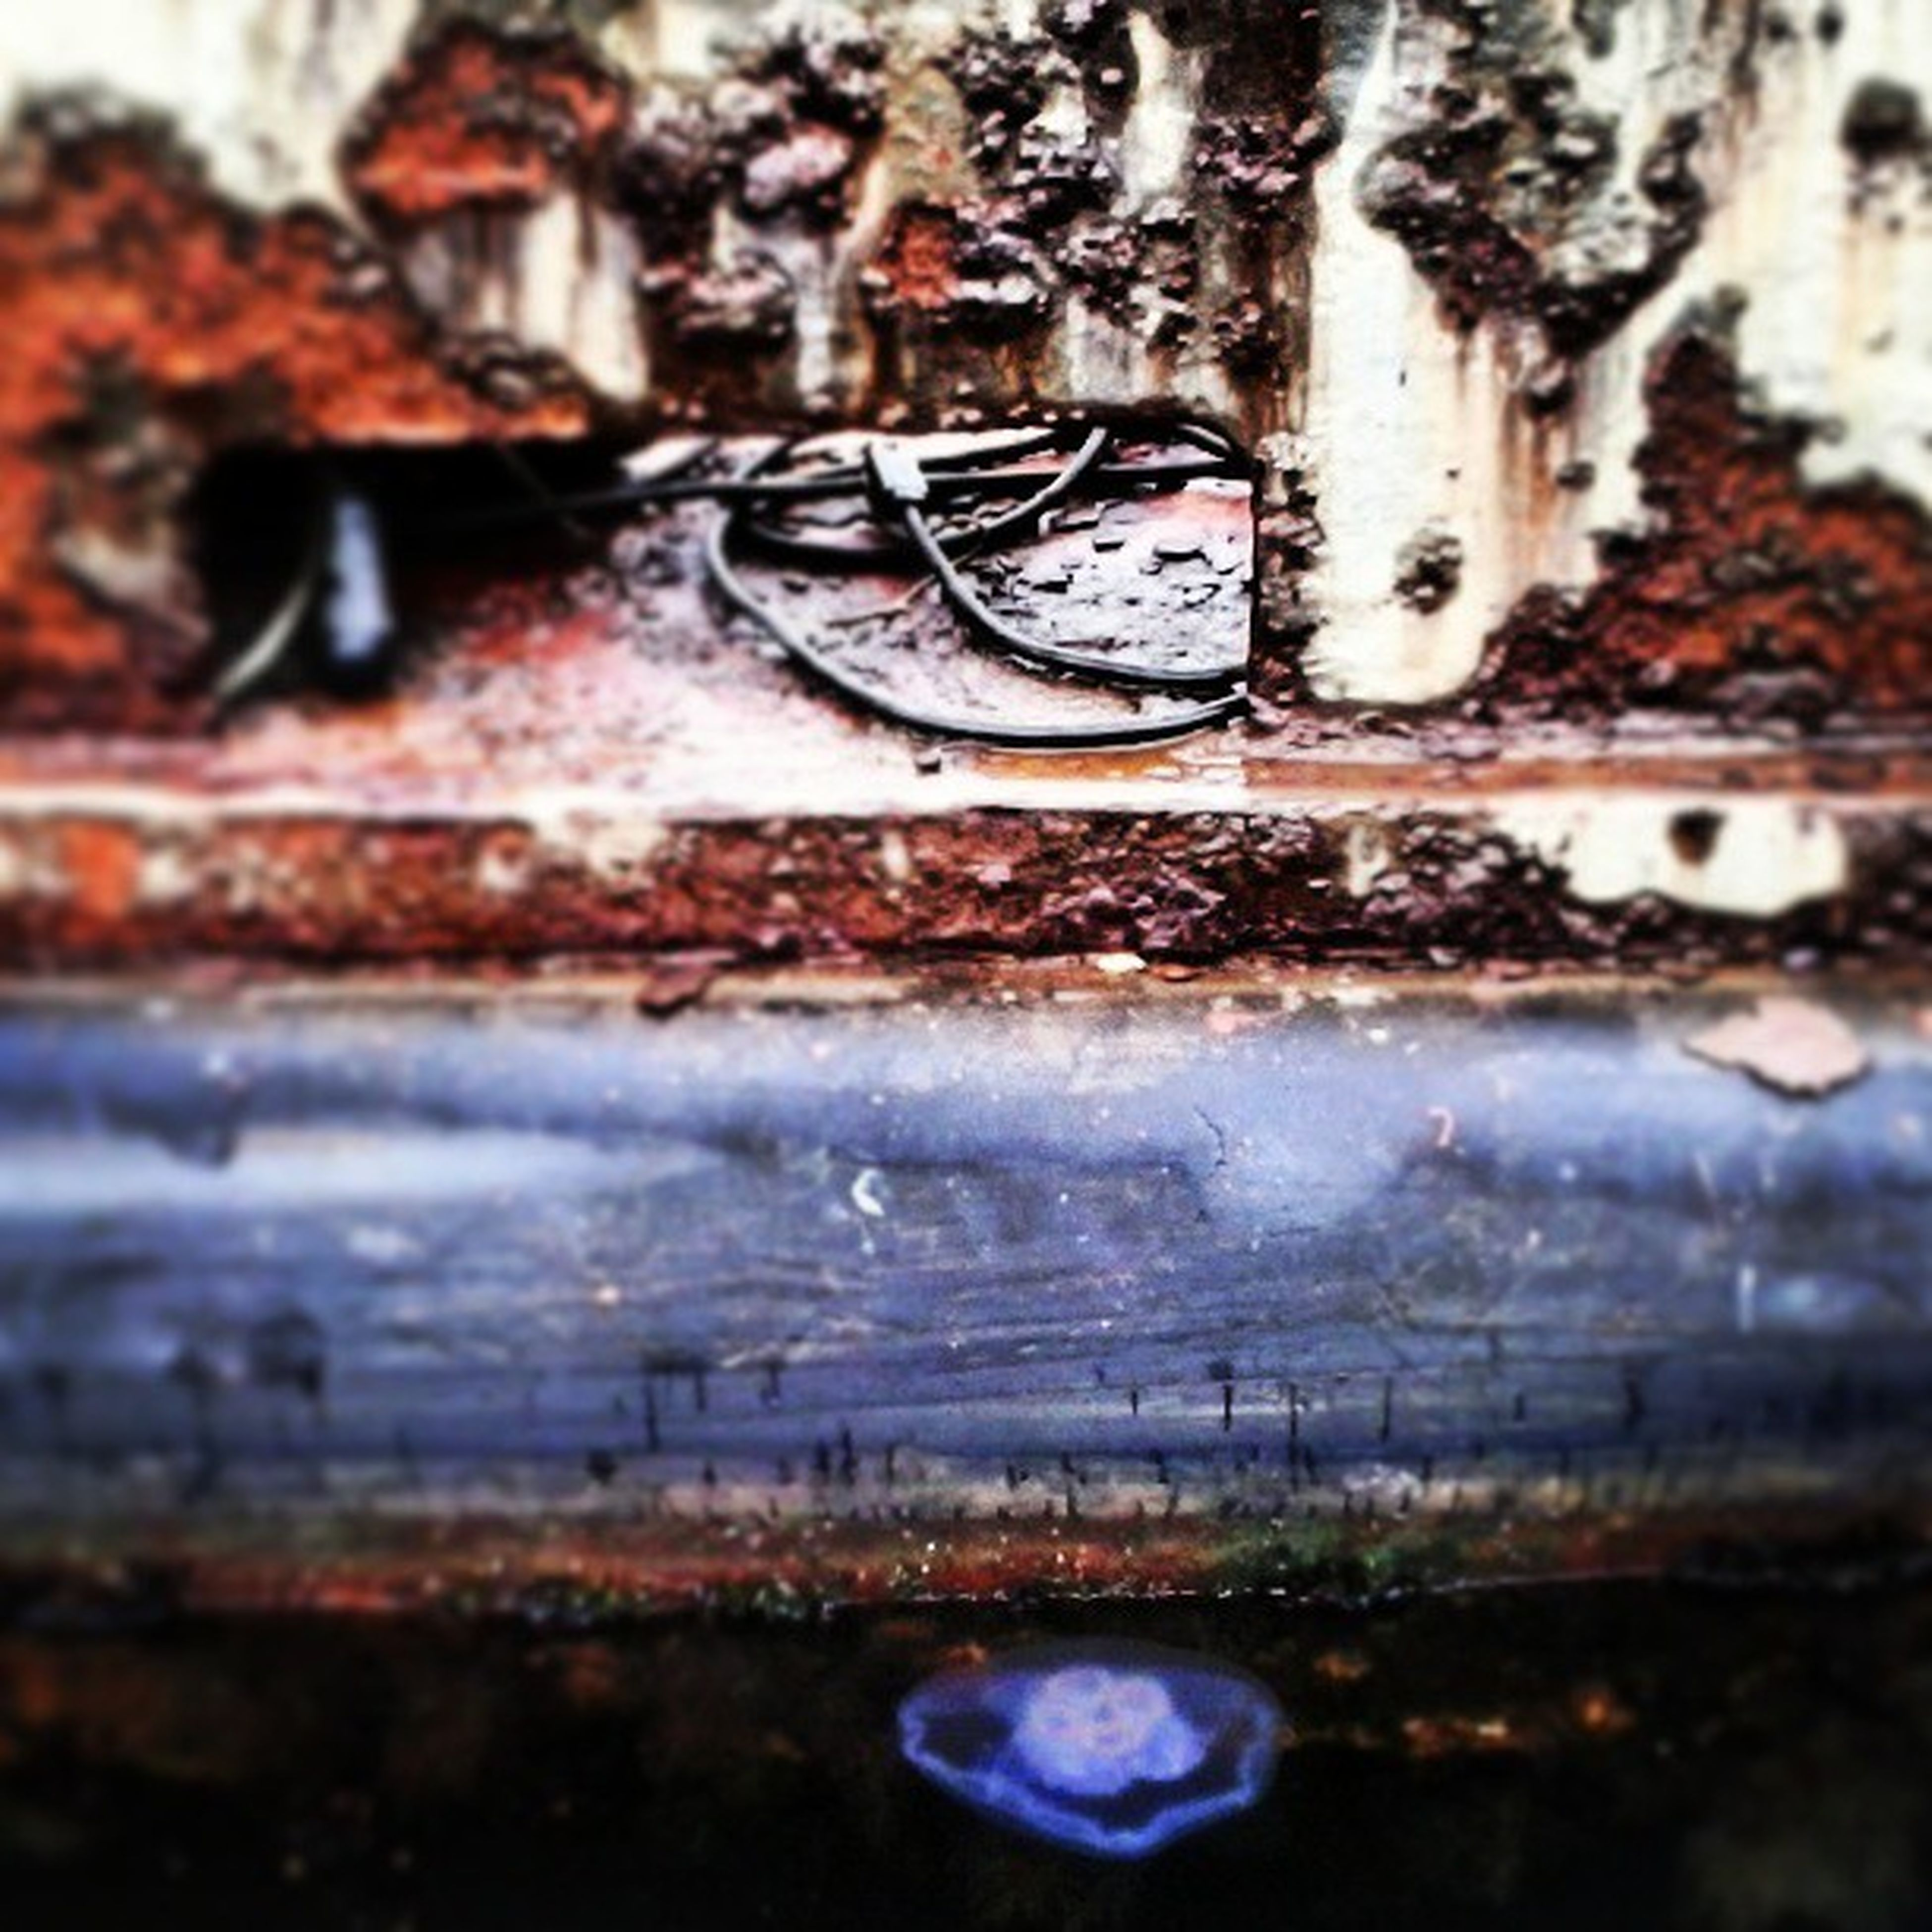 water, wet, architecture, close-up, built structure, selective focus, focus on foreground, drop, rain, building exterior, reflection, outdoors, day, no people, metal, rusty, raindrop, window, transportation, puddle